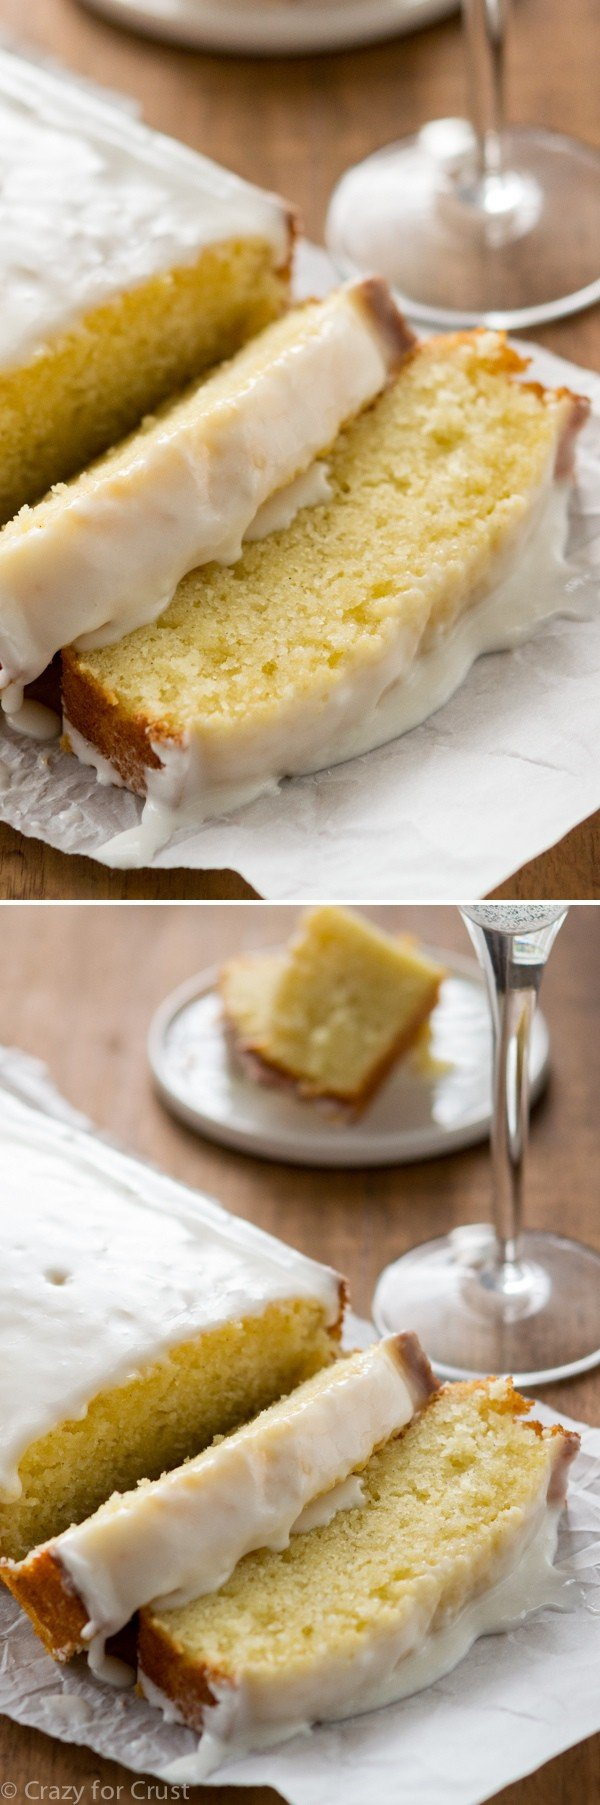 Champagne Pound Cake with triple the champagne flavor! This is the BEST pound cake I've ever eaten.